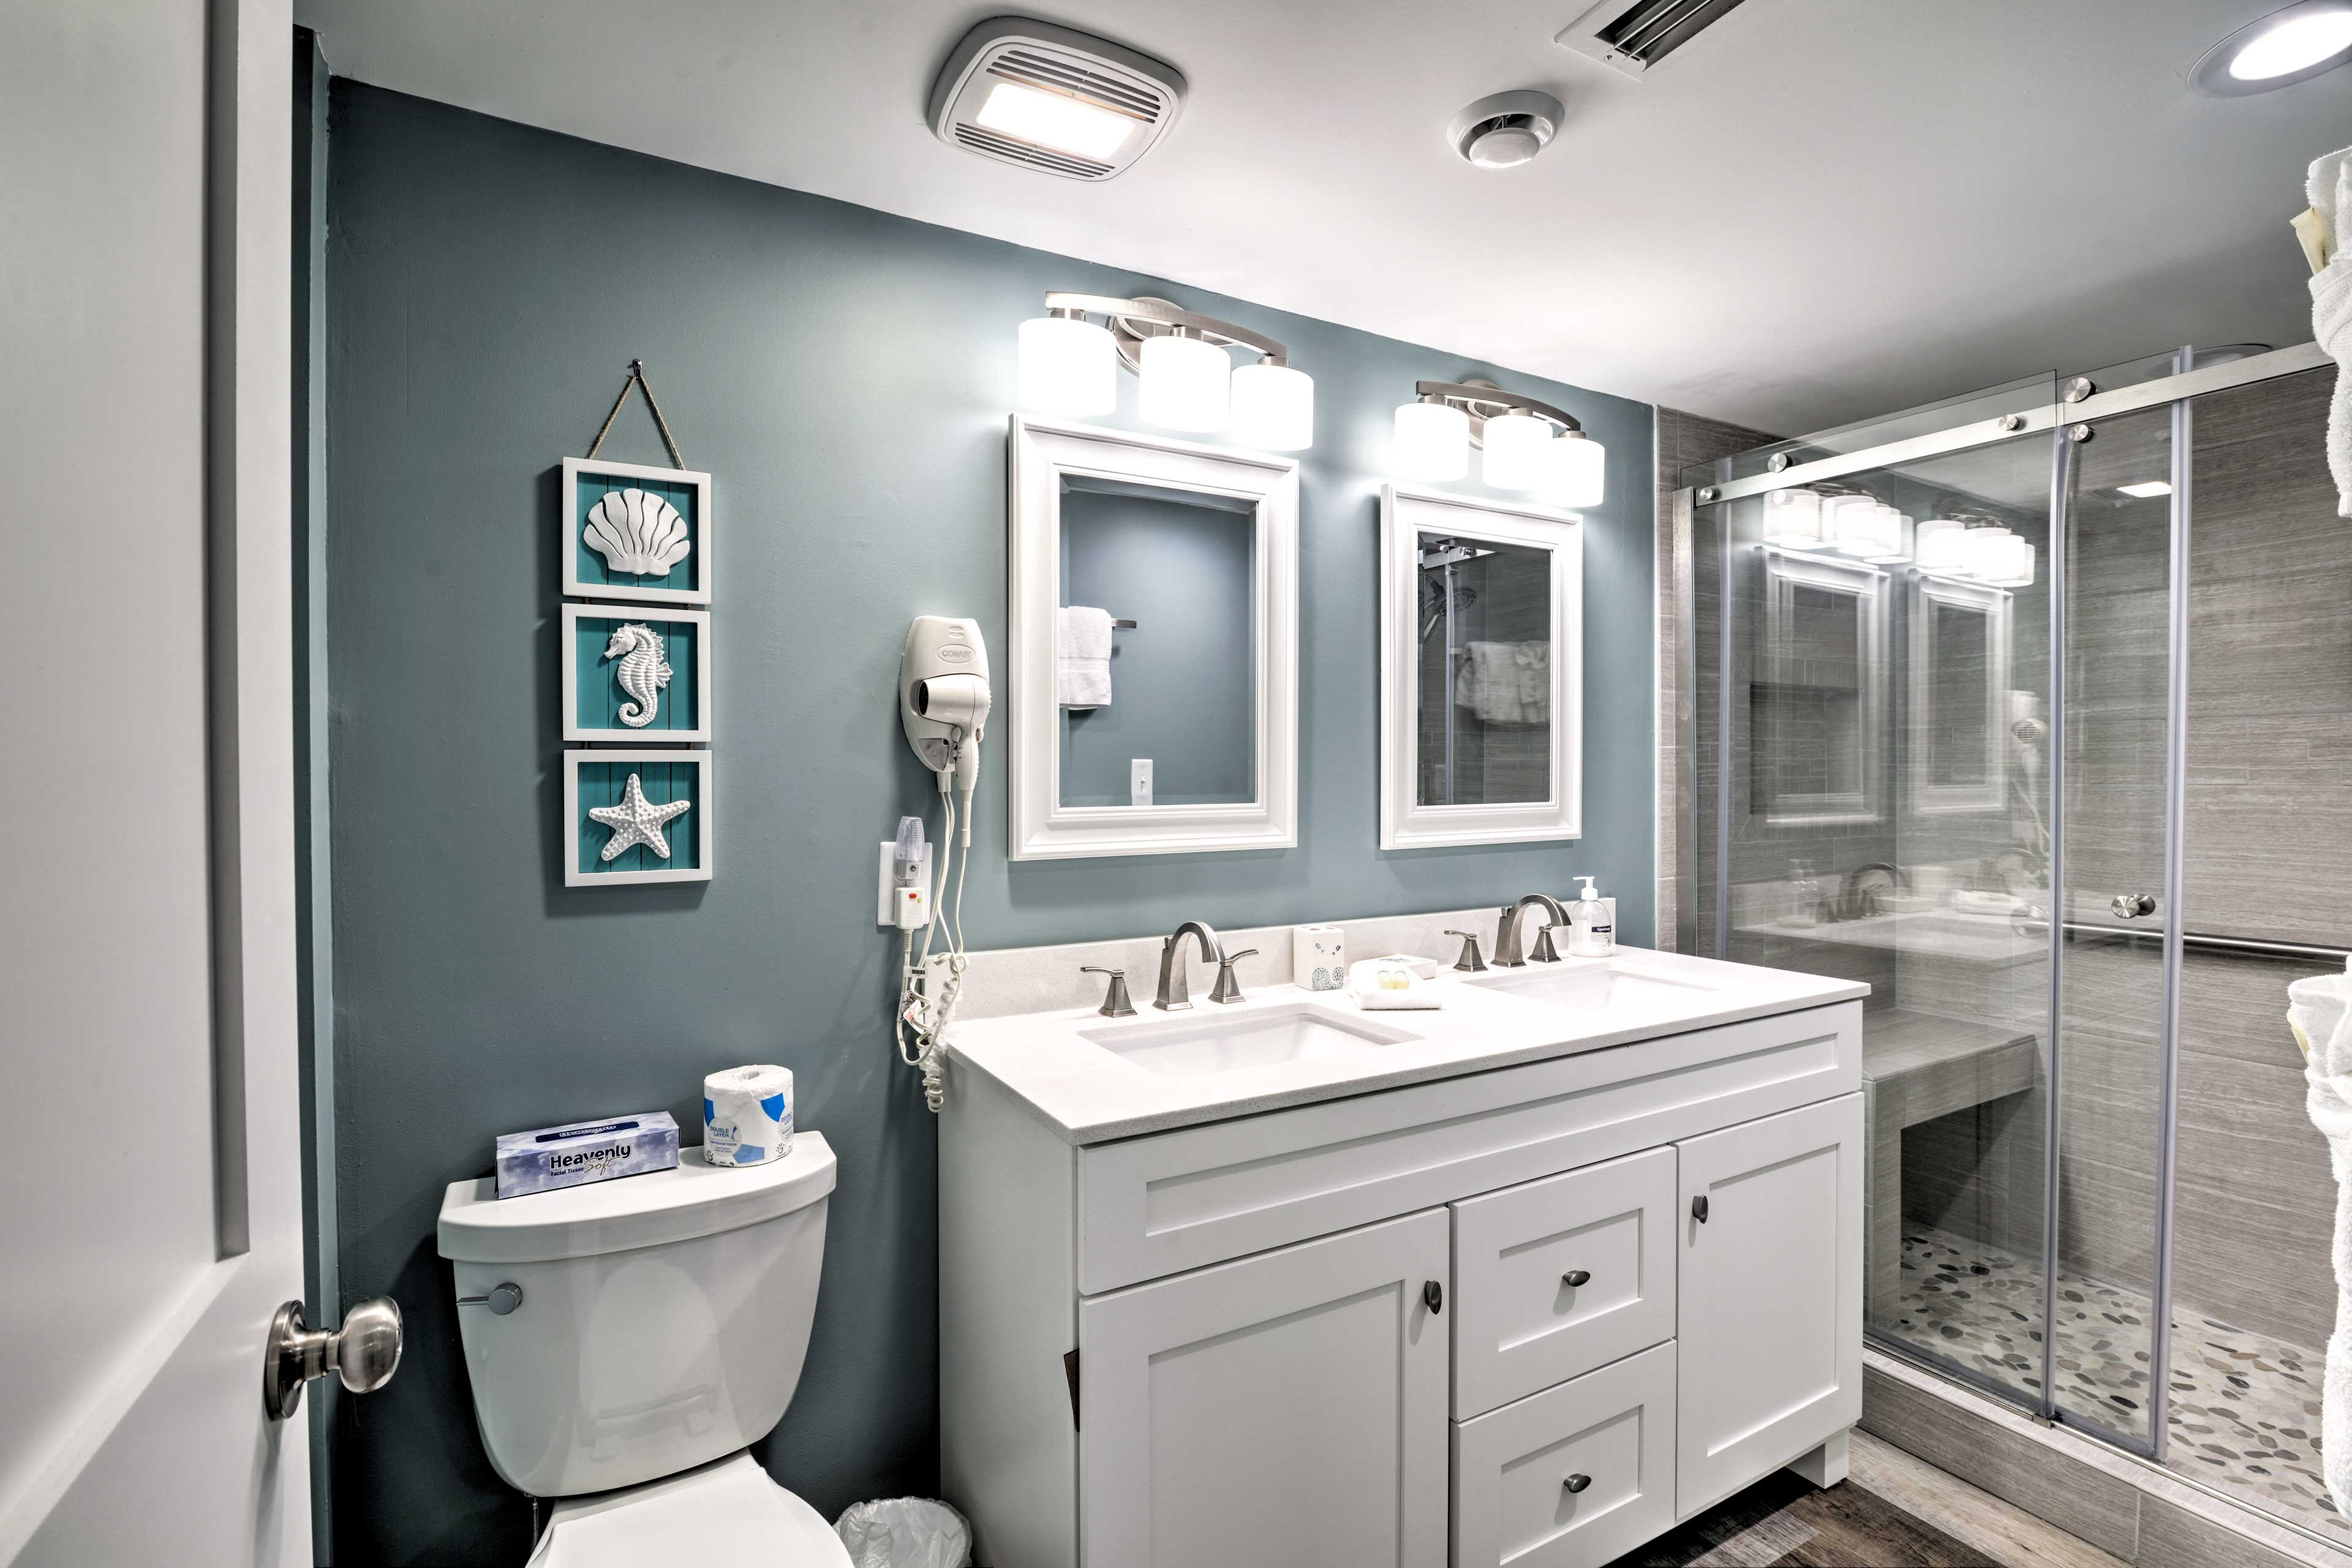 The master en-suite bathroom offers a new double vanity and walk-in shower.